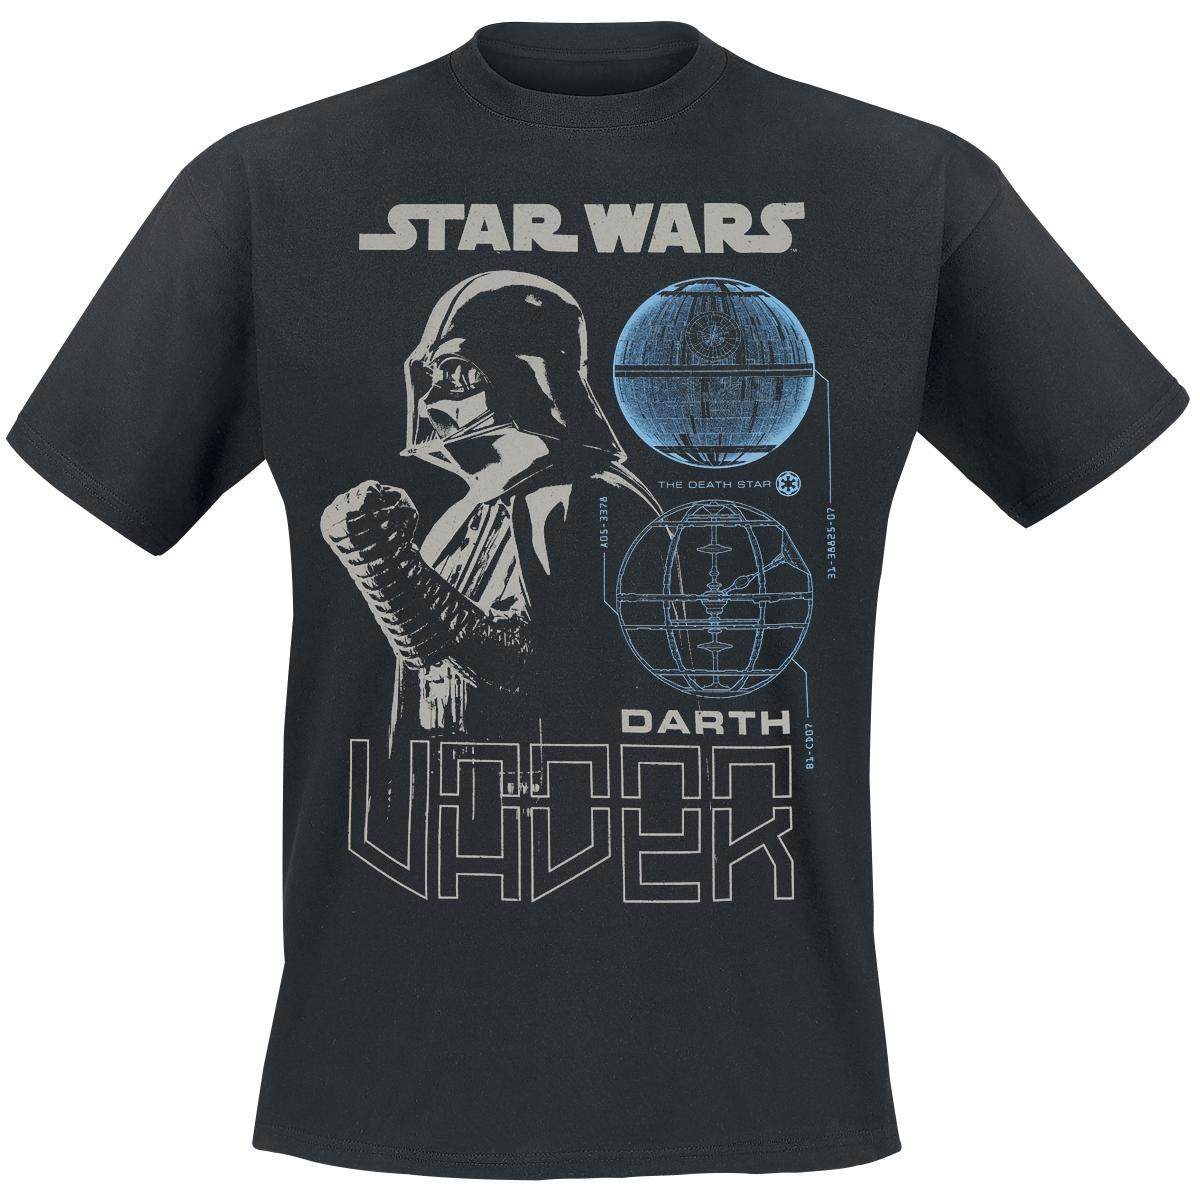 08-star-wars-darth-vader